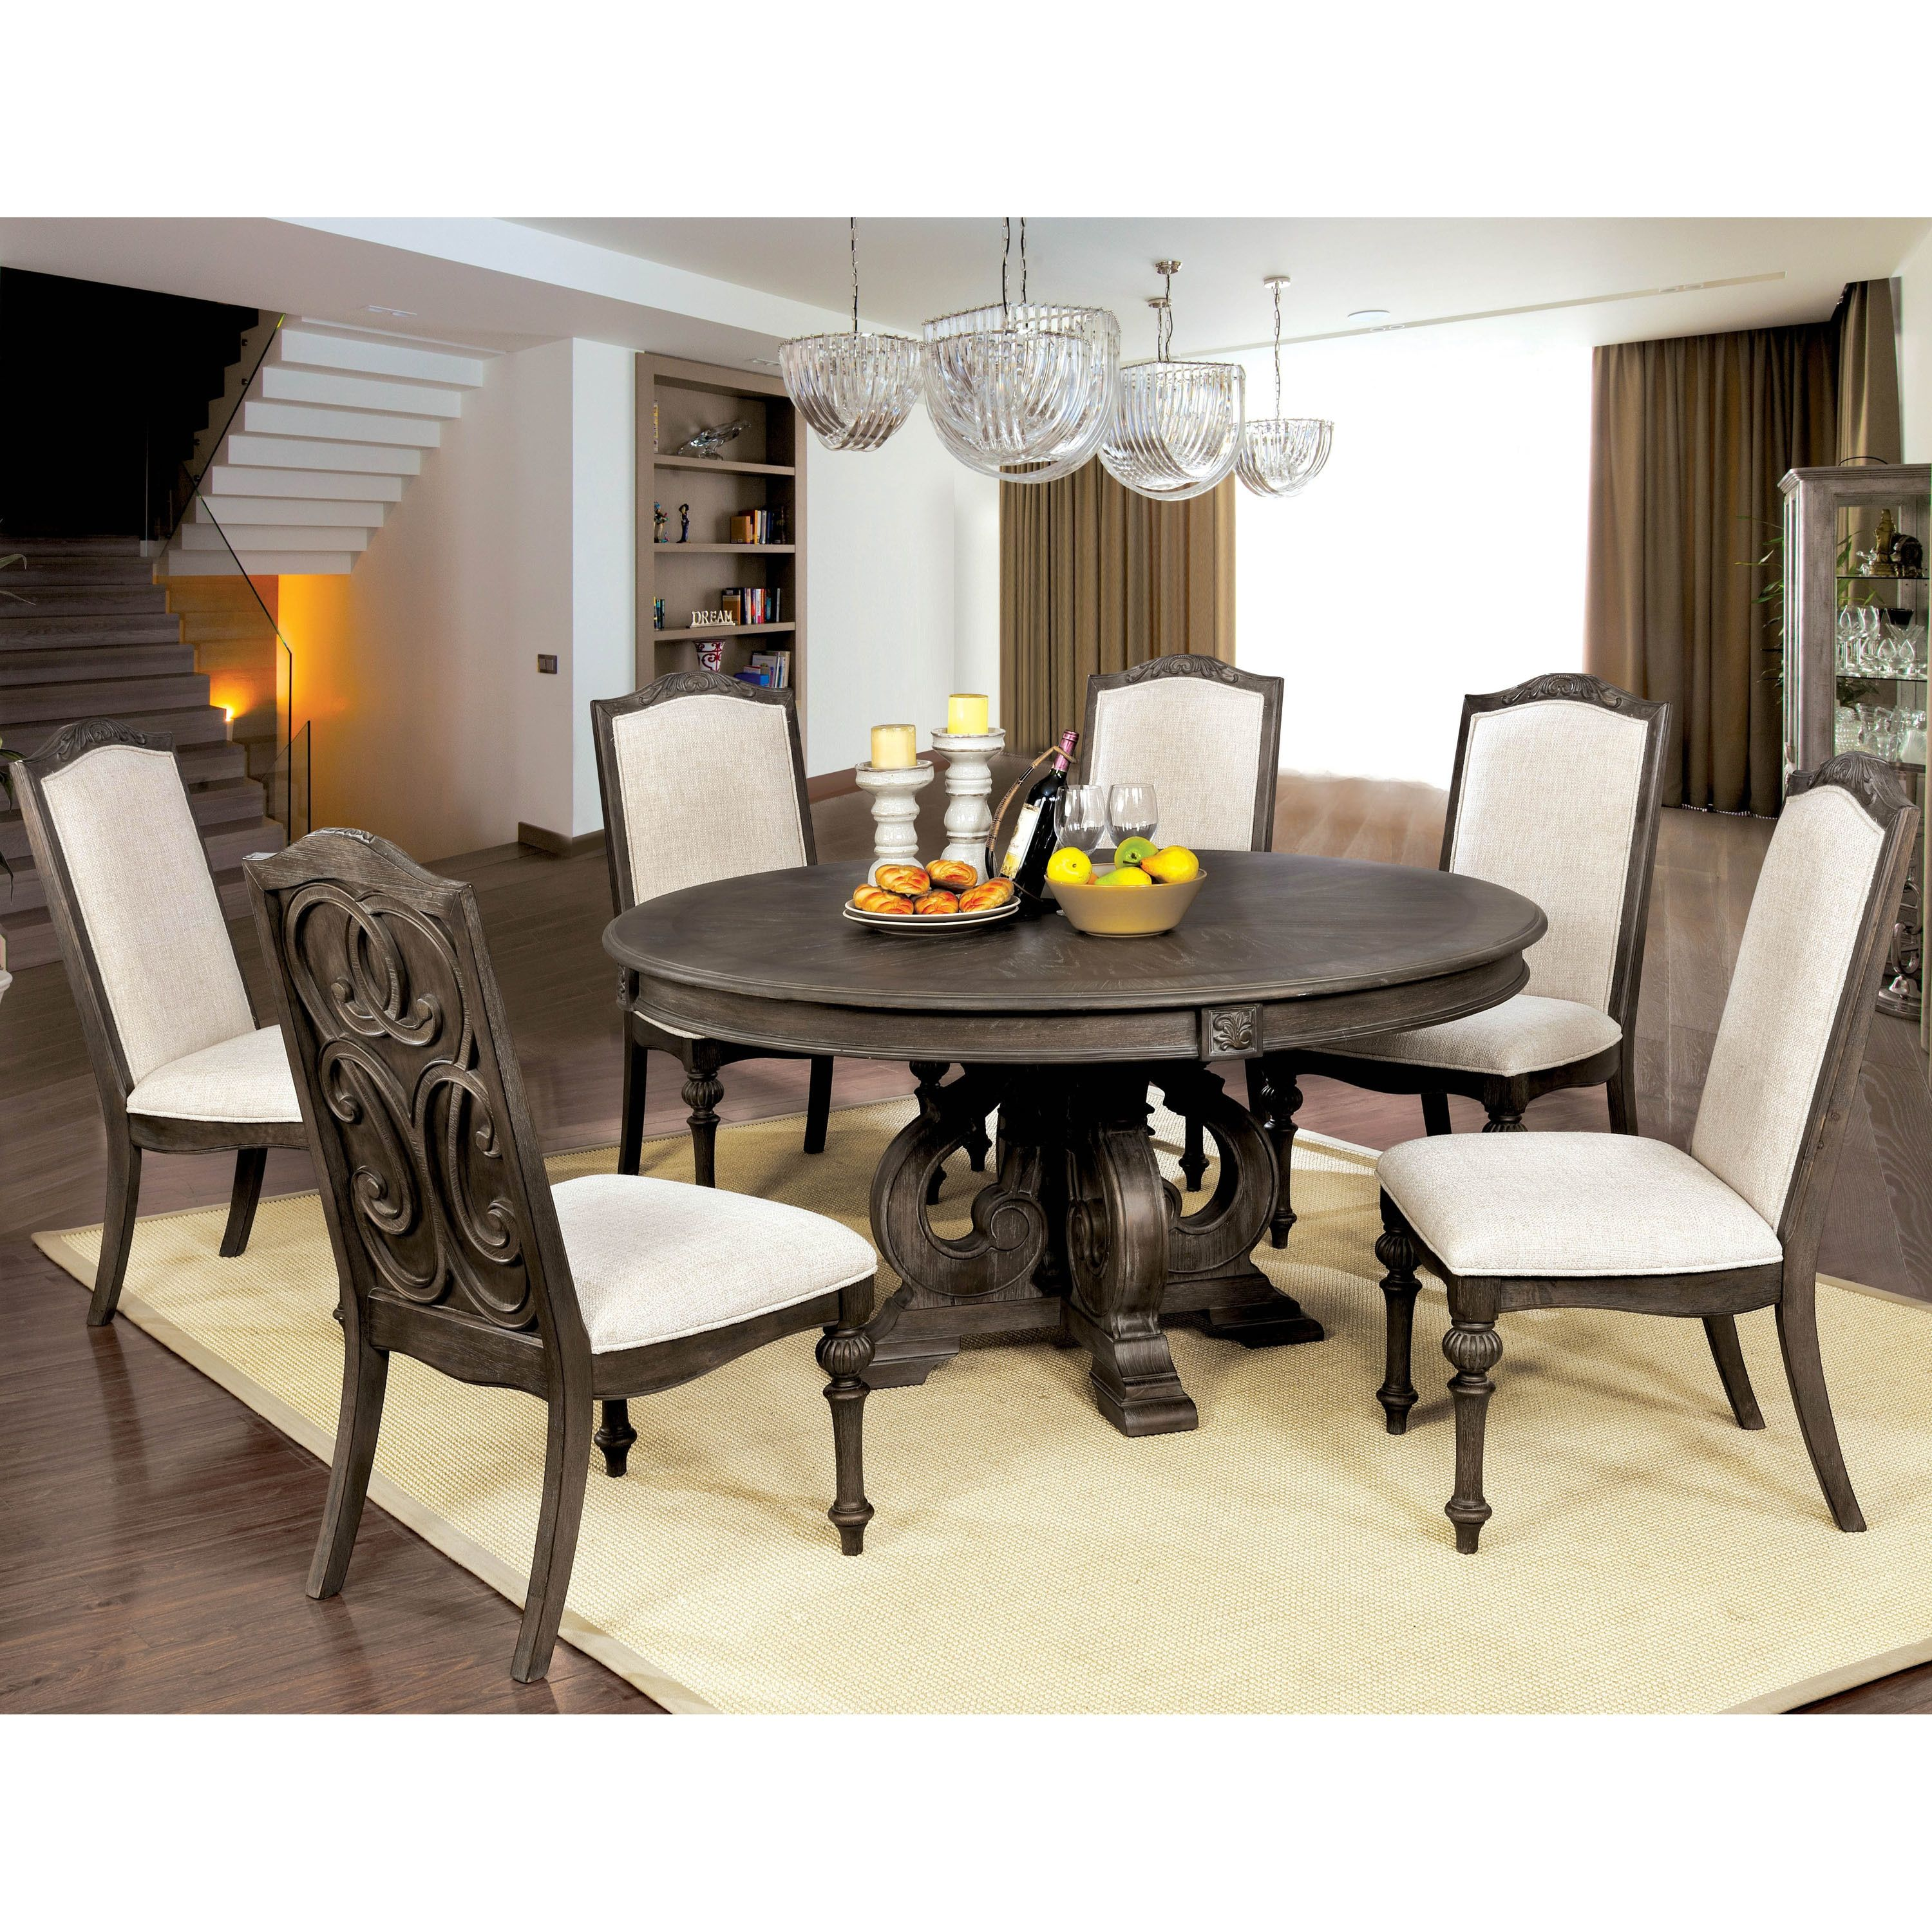 Furniture Of America Kaur Rustic Brown 60 Inch Round Dining Table